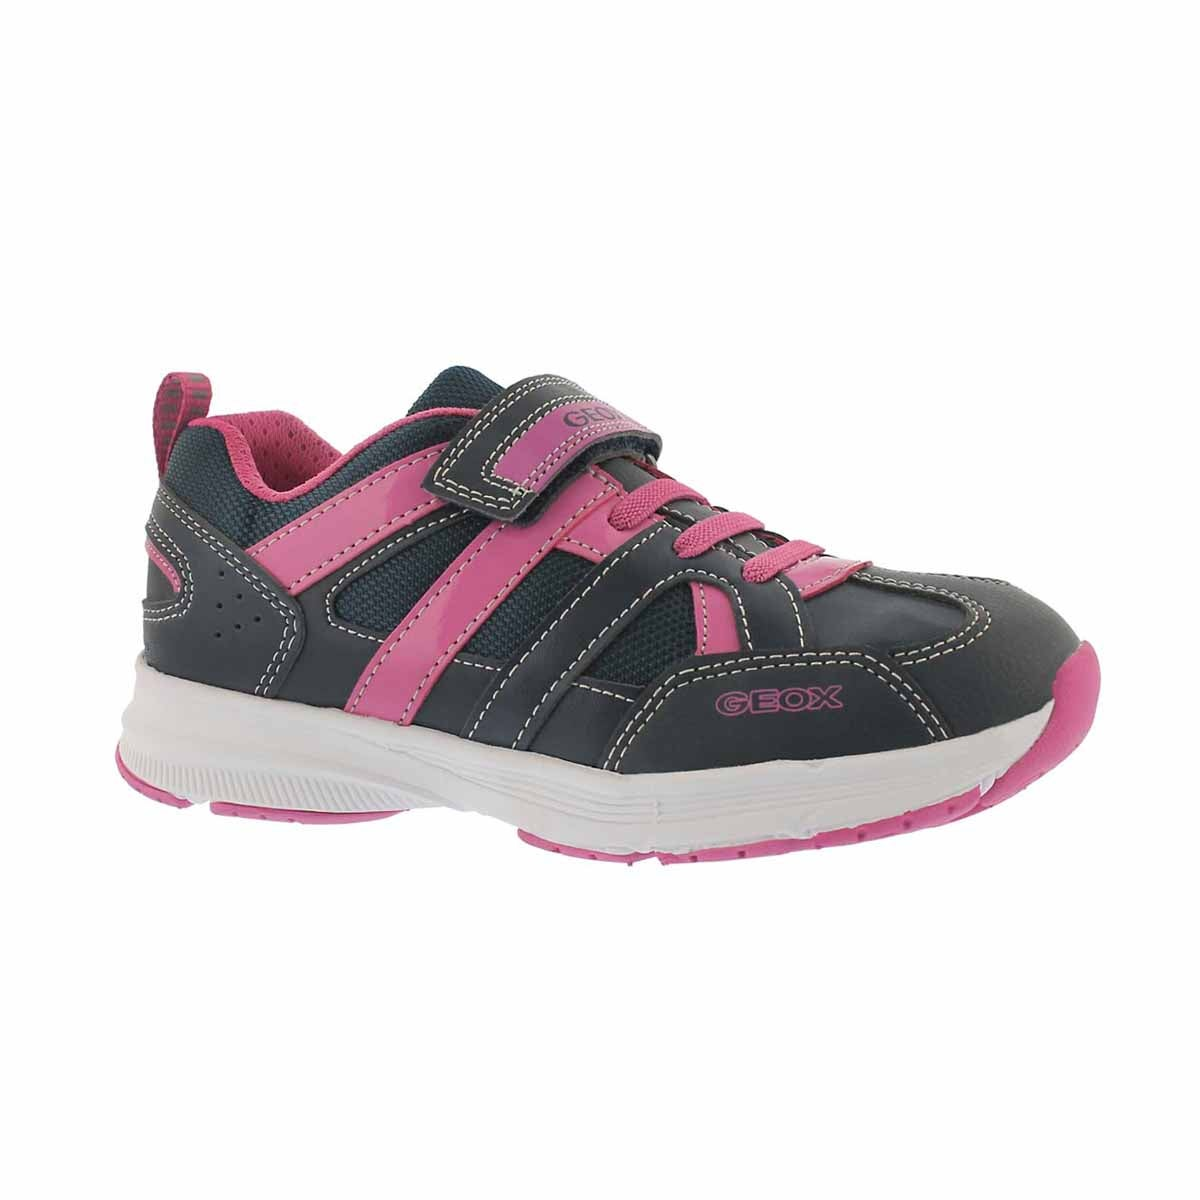 Girls' TOP FLY navy/fuchsia running shoes